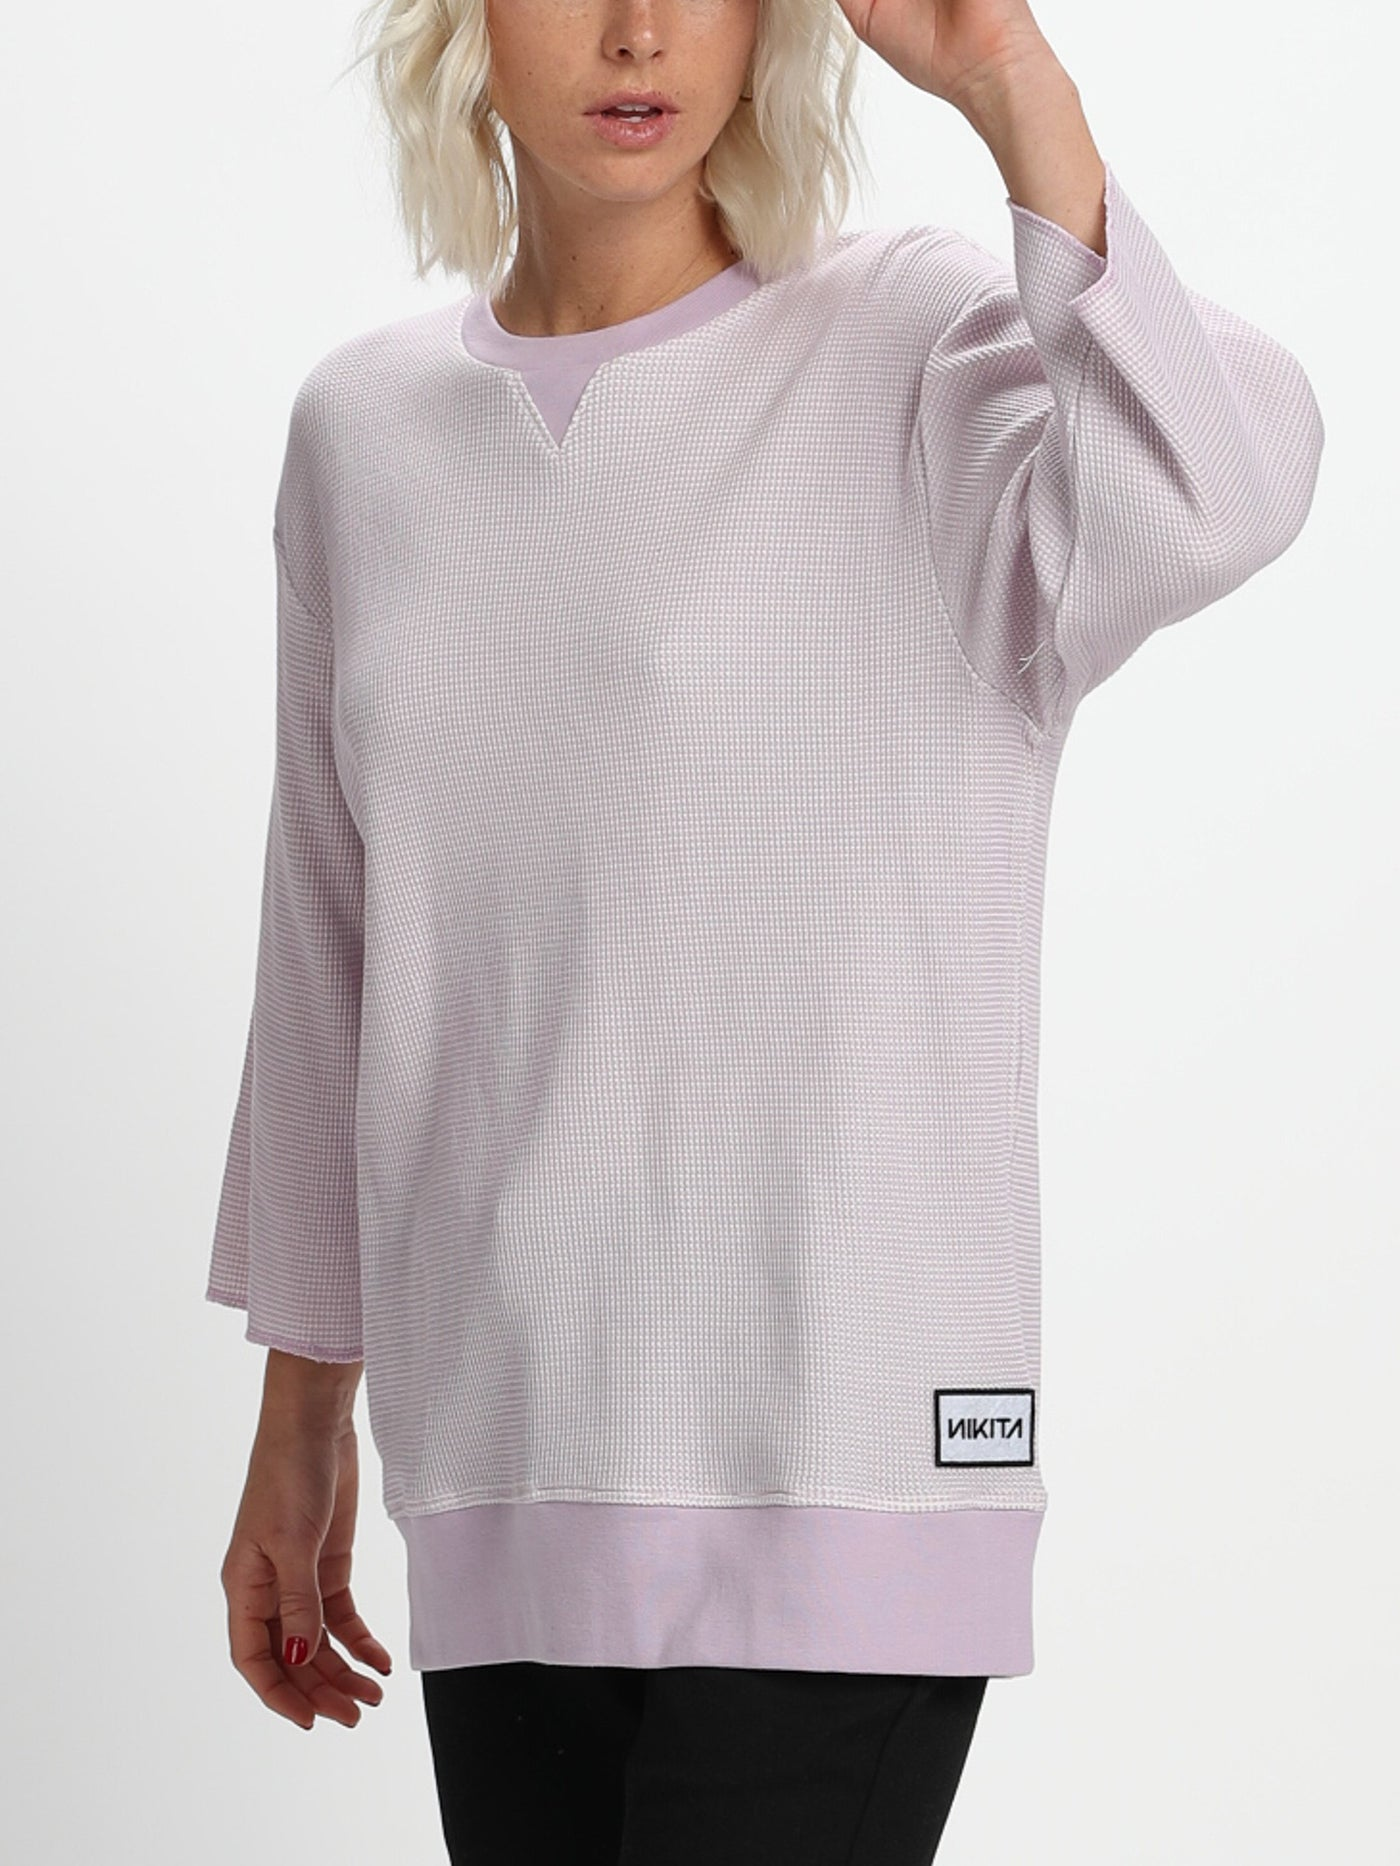 Rookie 3/4 Long Sleeve T-Shirt